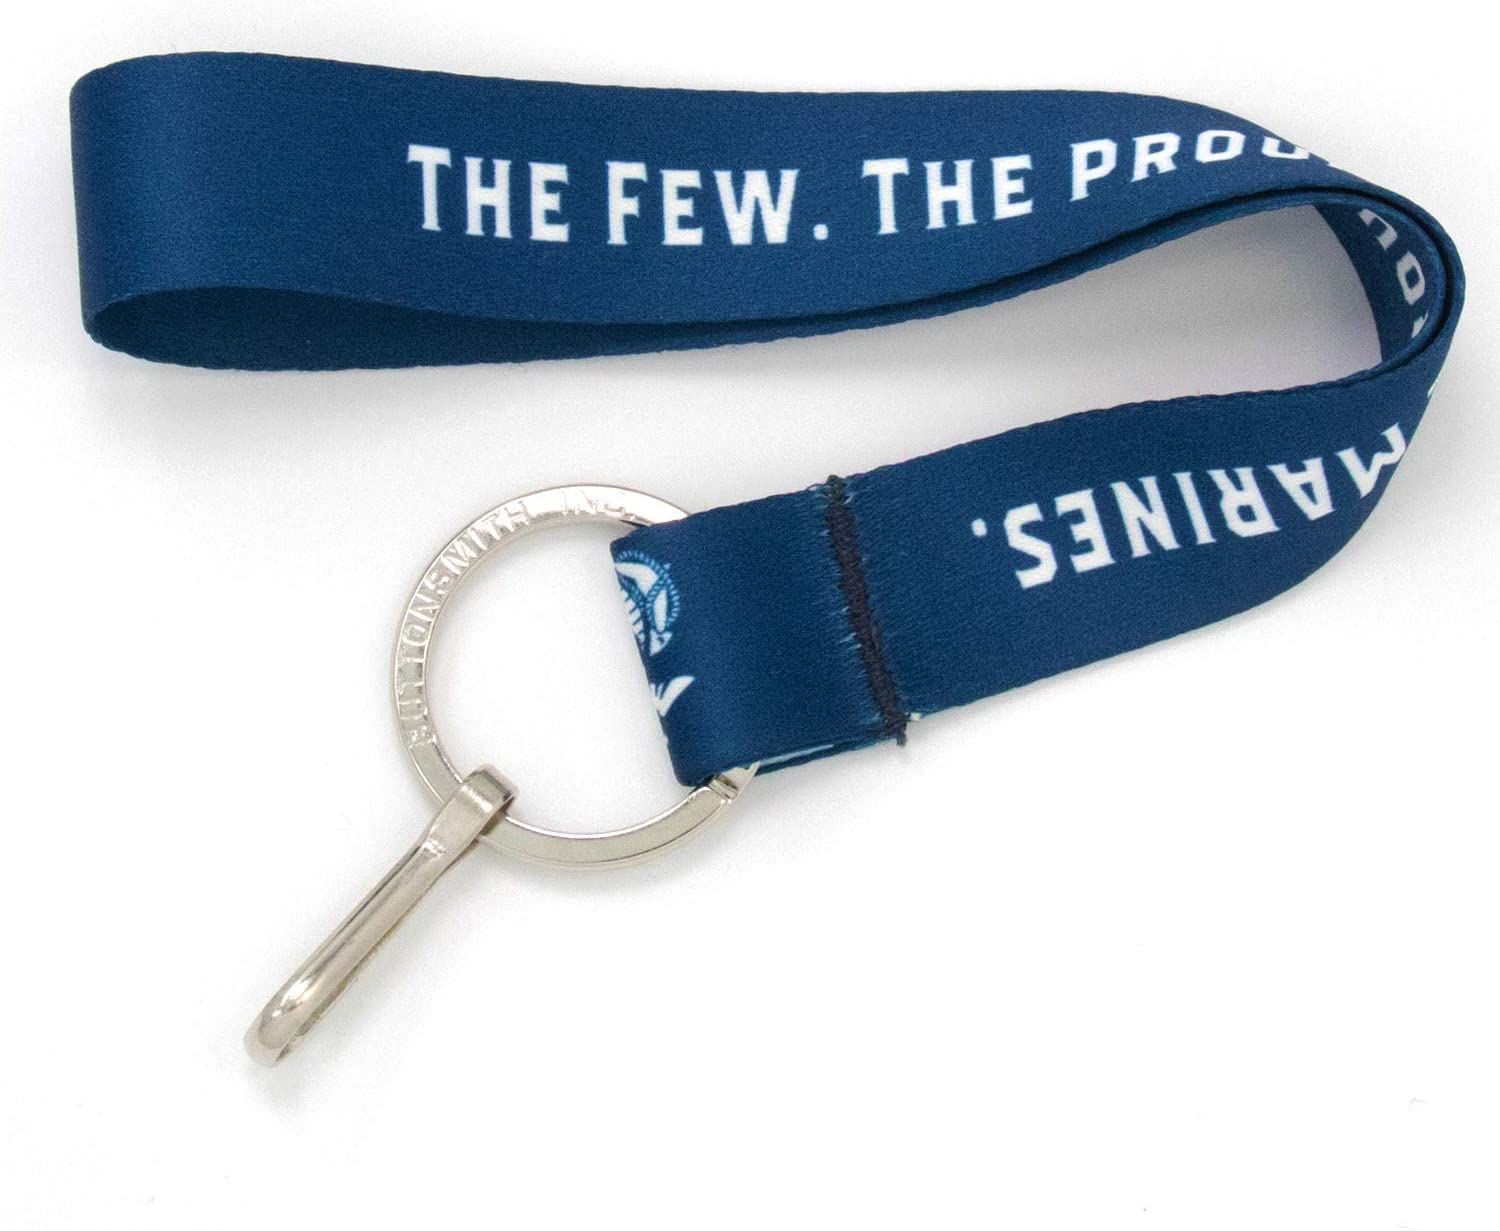 Buttonsmith The Few The Proud Blue Wristlet Key Chain Lanyard - Short Length with Flat Key Ring and Clip - Made in The USA